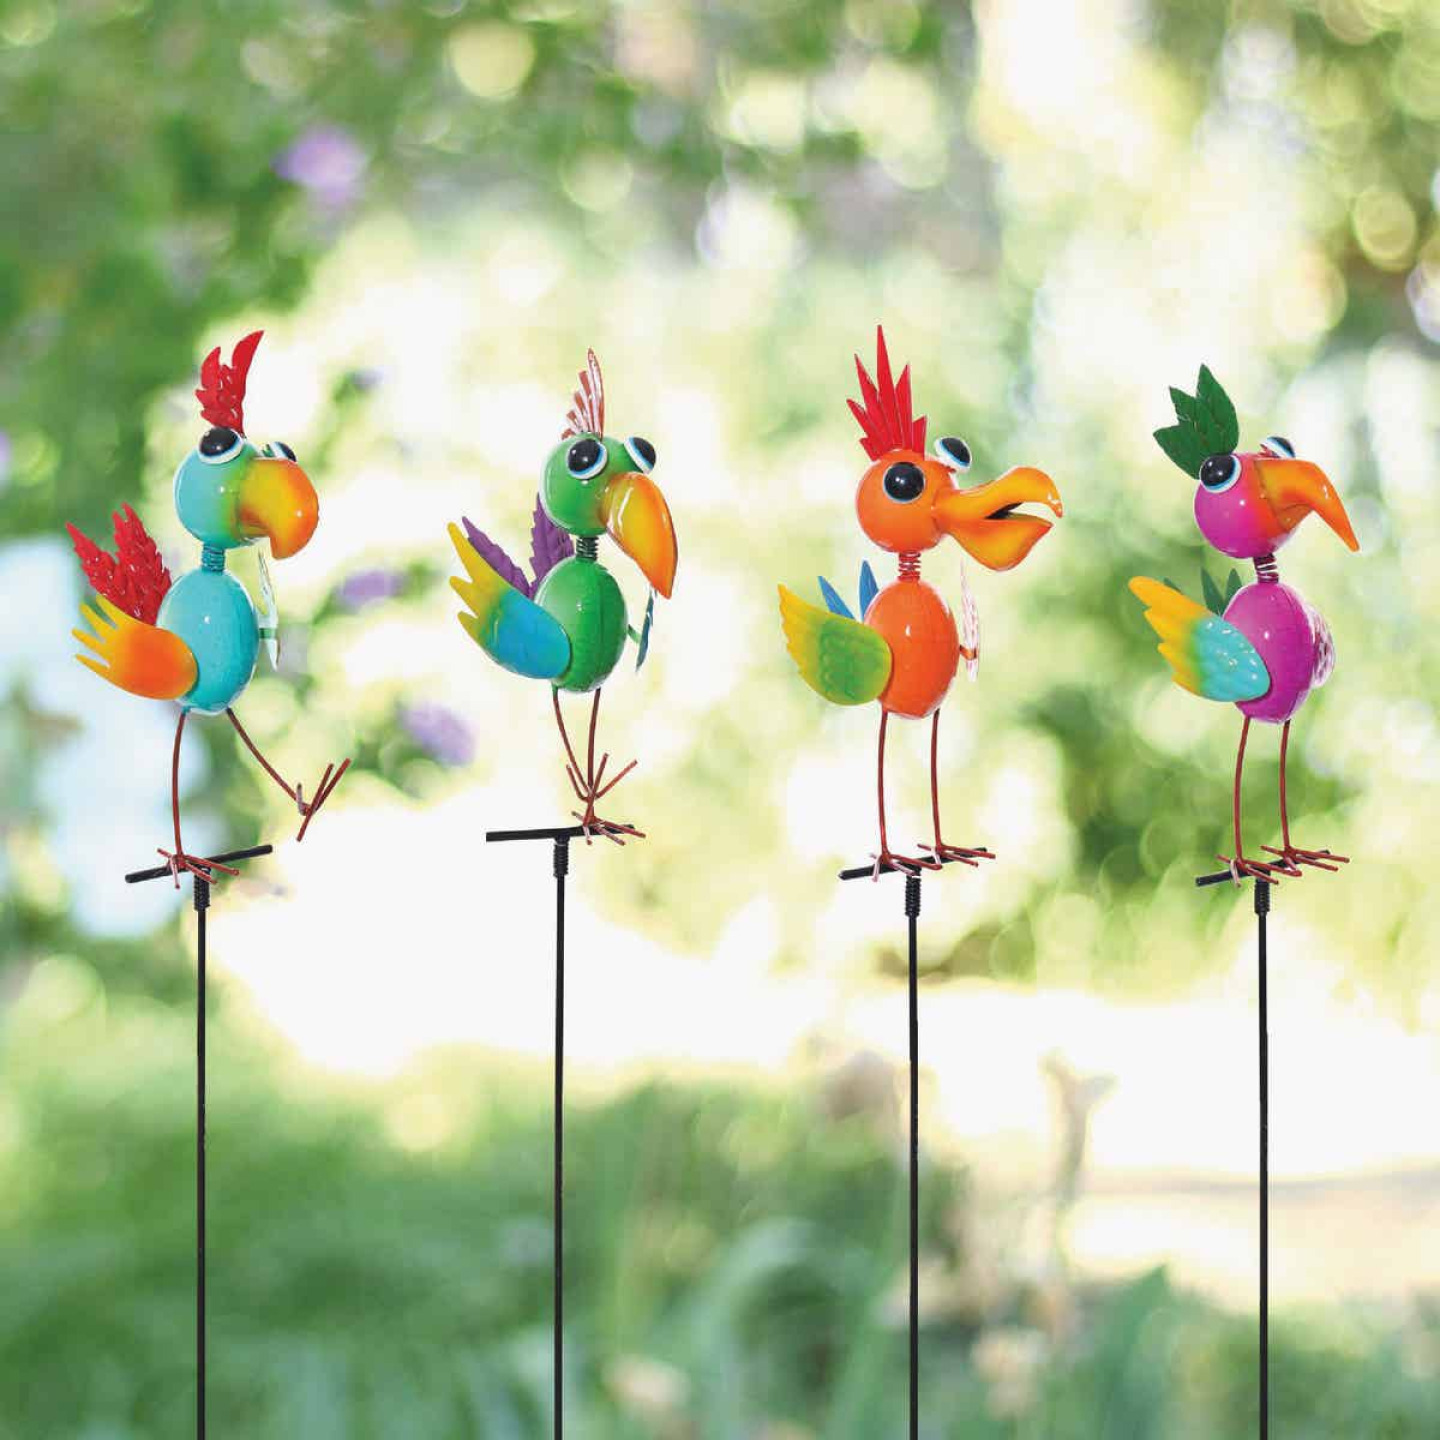 Alpine 35 In. Metal Bird Garden Stake Lawn Ornament Image 2